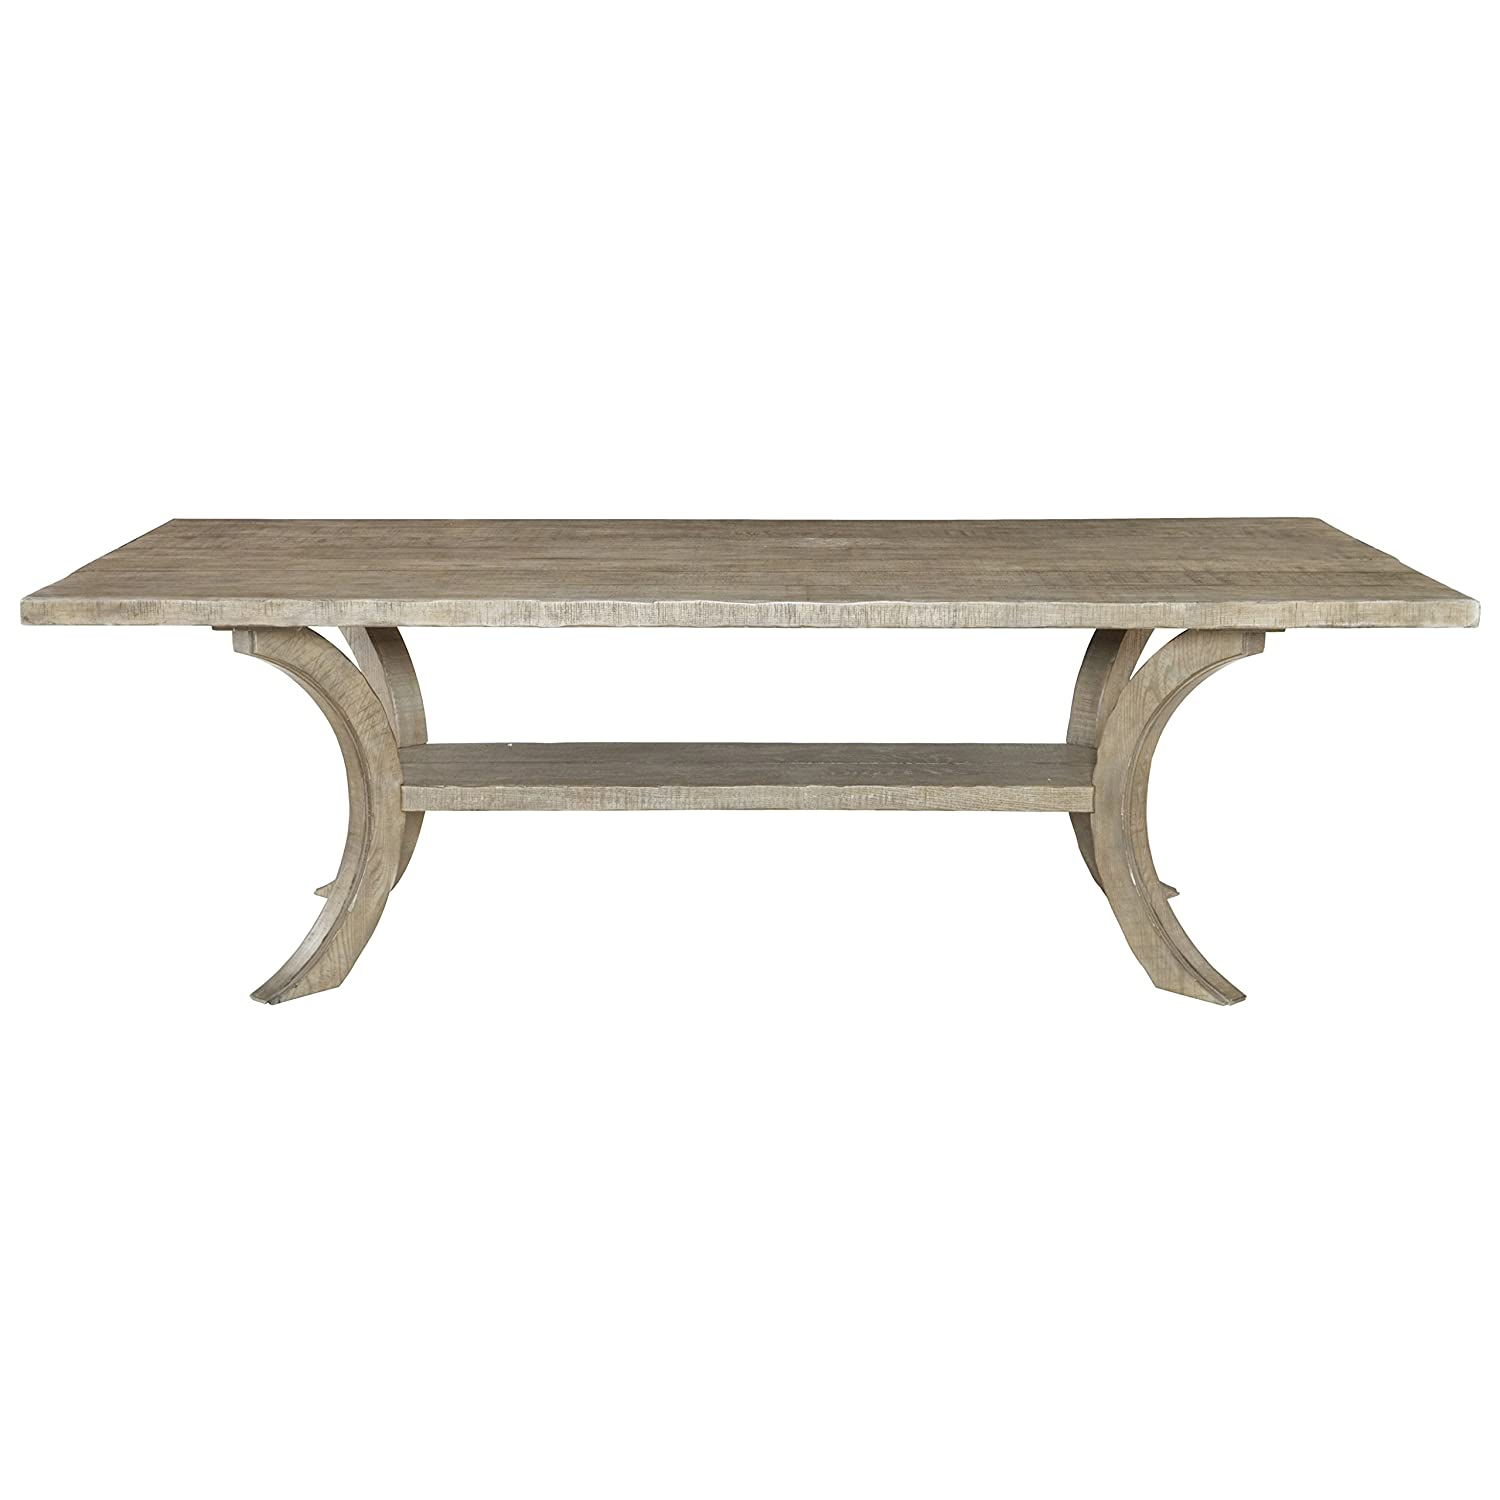 Mayra French Country Rustic Oak Plank Dining Table